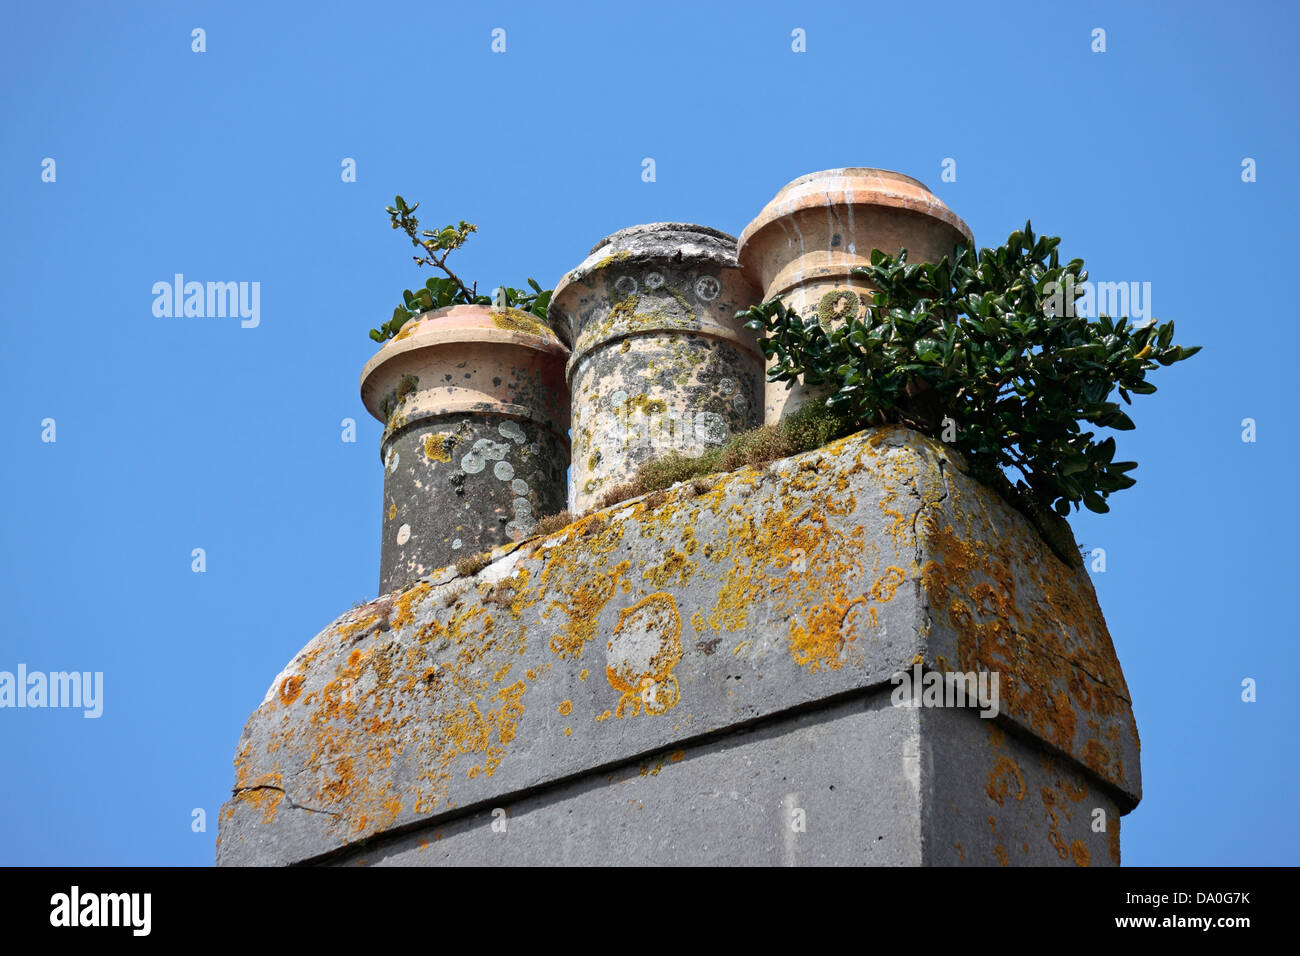 Chimney Pots with various lichens mosses and plants growing on them - Stock Image